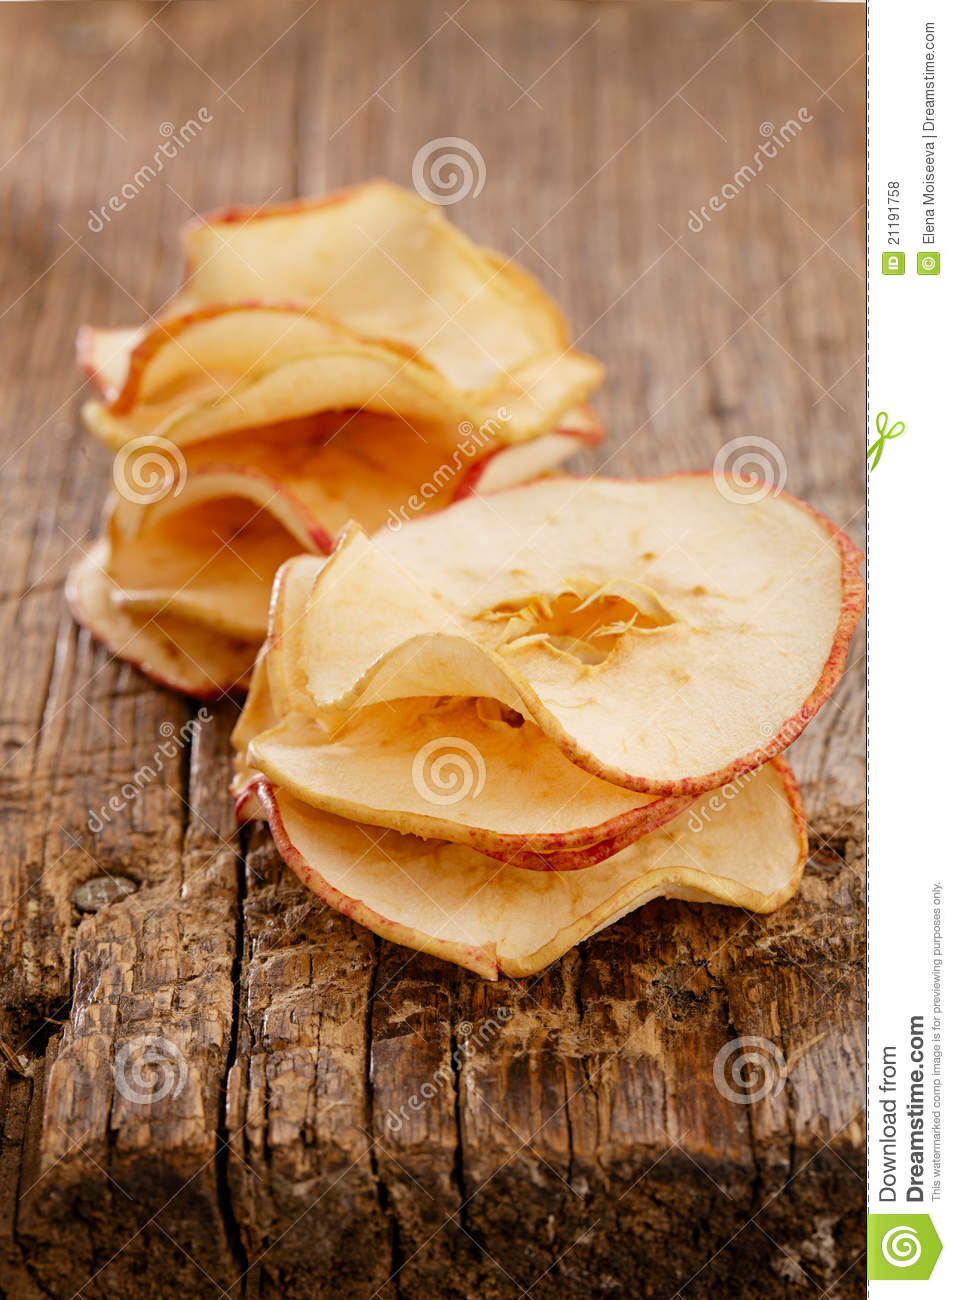 Dried apples slices on old wooden table stacked